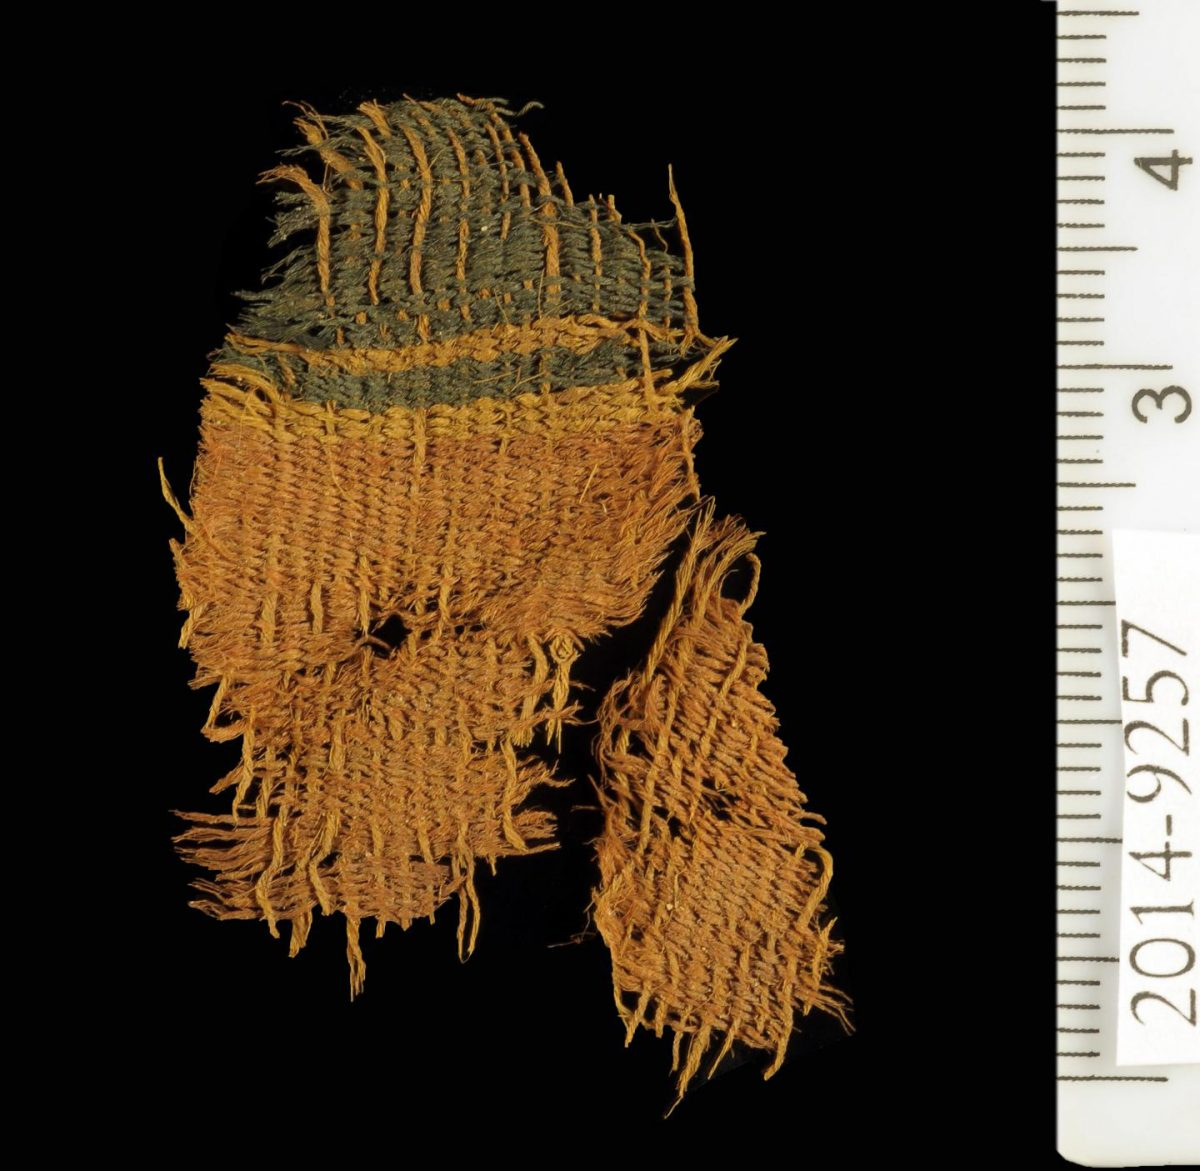 Dyed textile at Timna. Credit: Clara Amit, courtesy of the Israeli Antiquities Authority.